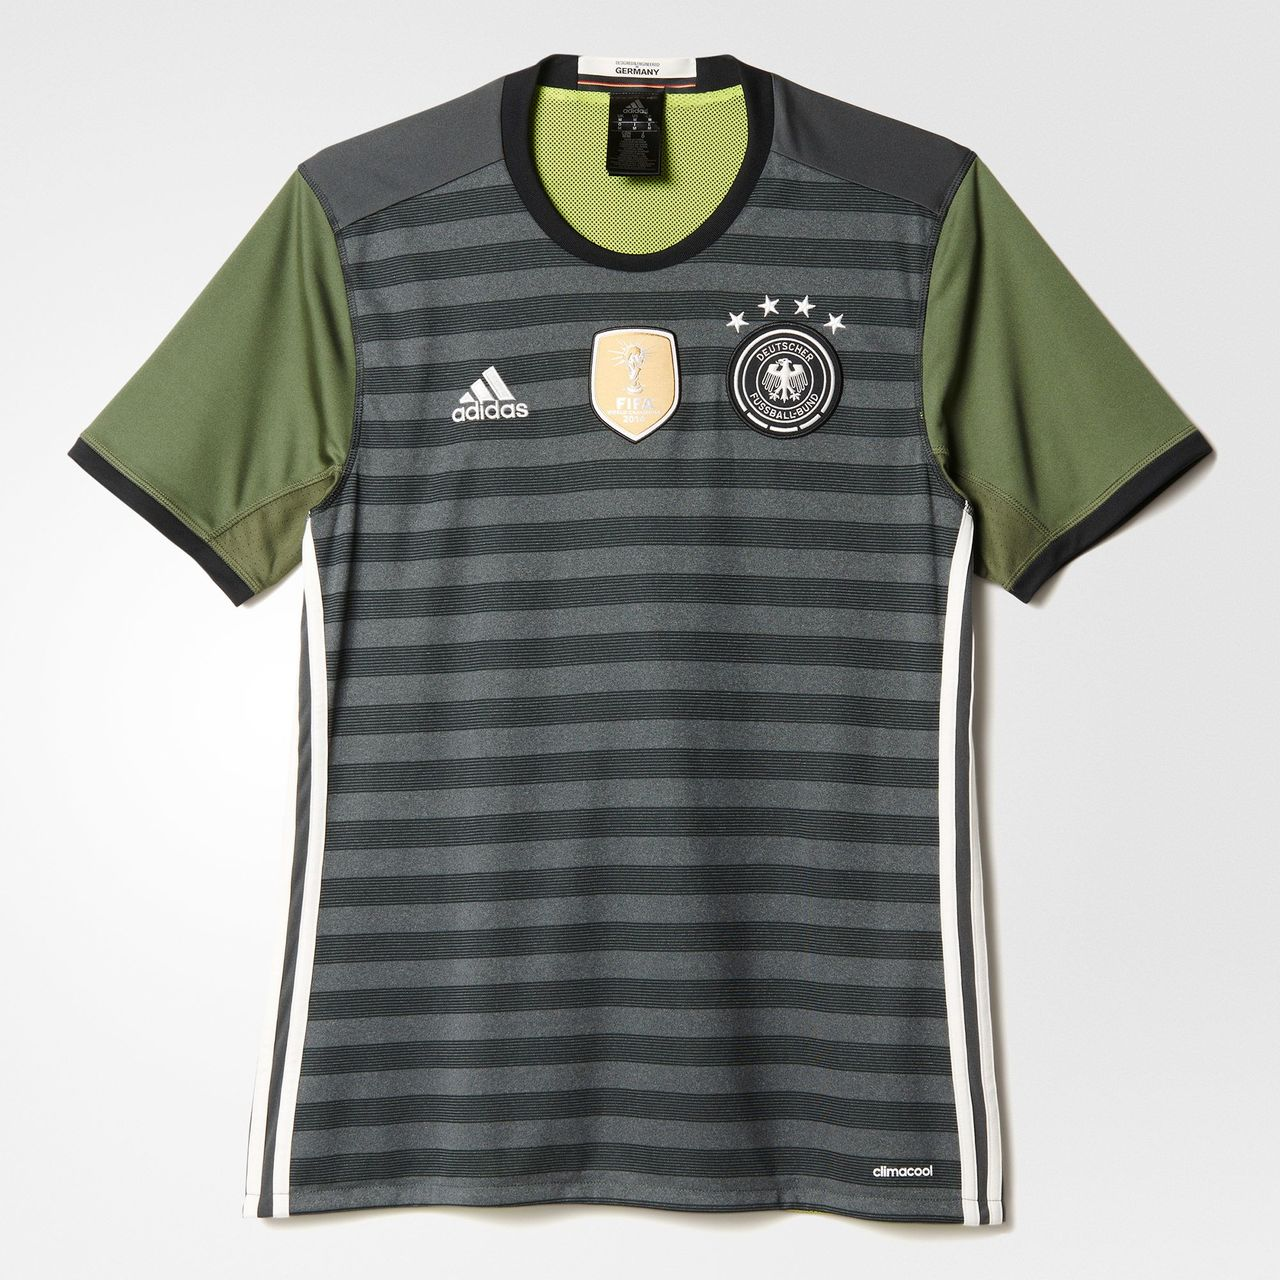 adidas futbol words shirt